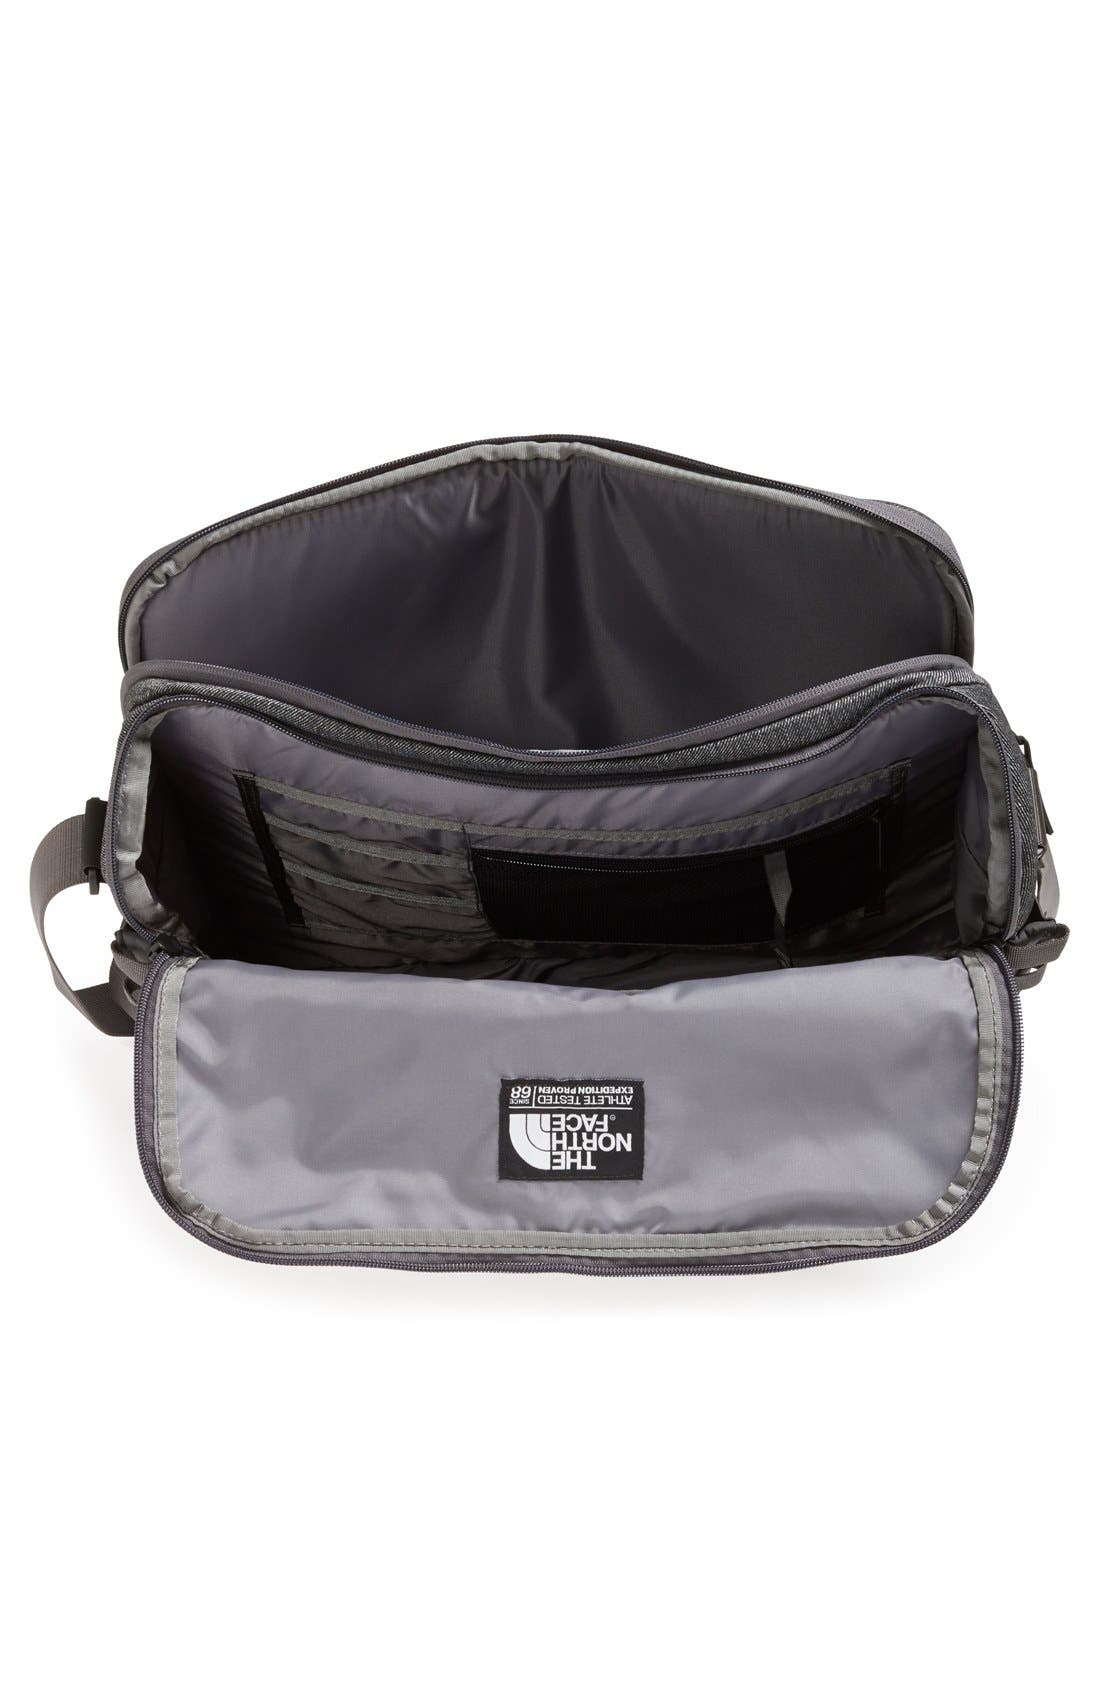 Alternate Image 3  - The North Face 'Westing' Messenger Bag